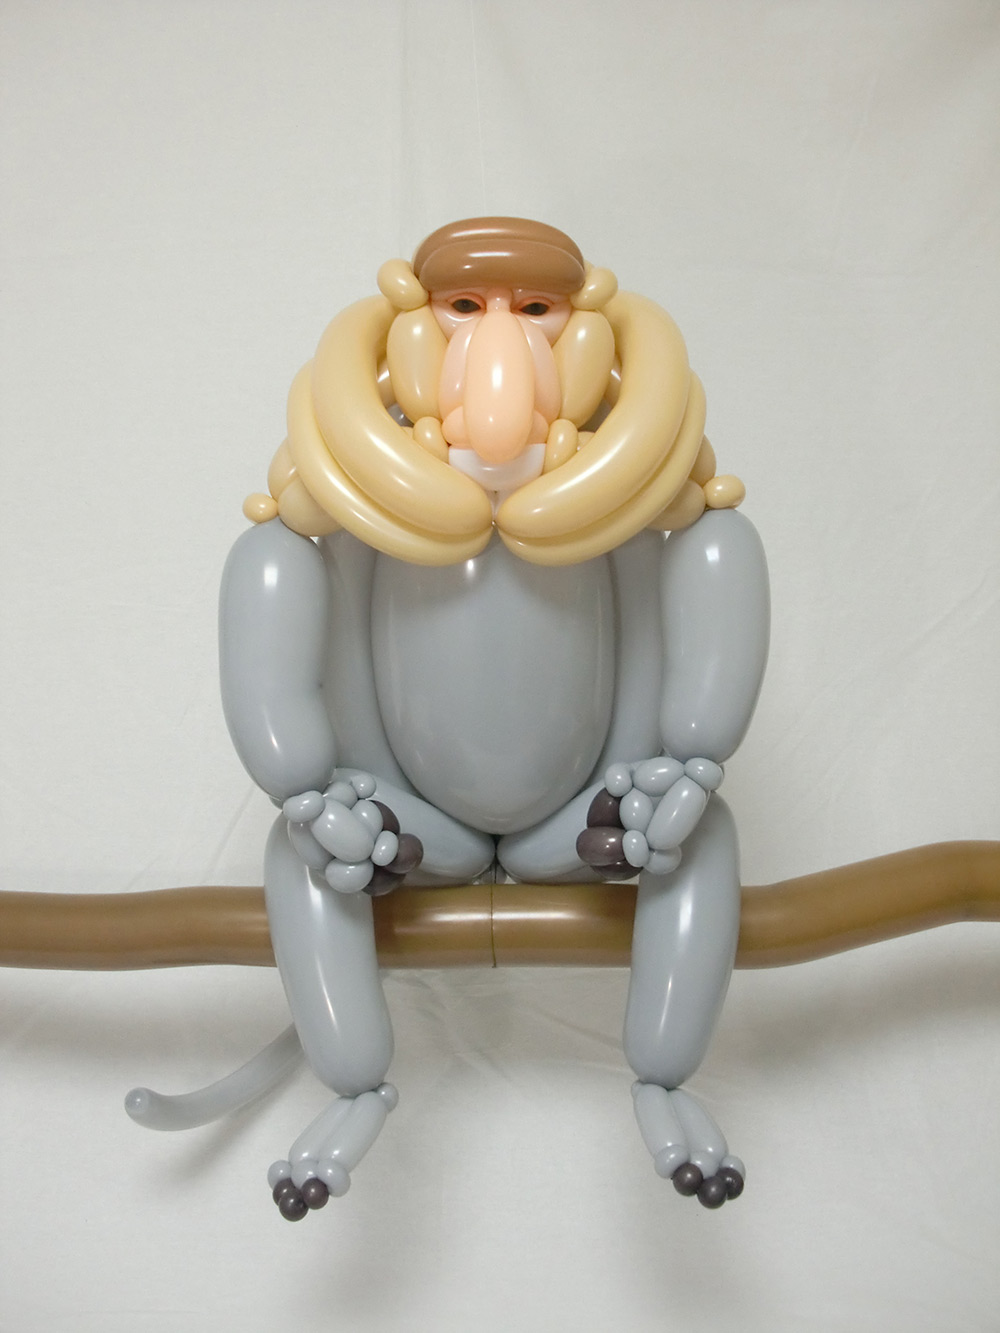 Fantastic Plant And Animal Twisted Balloon Sculptures By Masayoshi Matsumoto 6